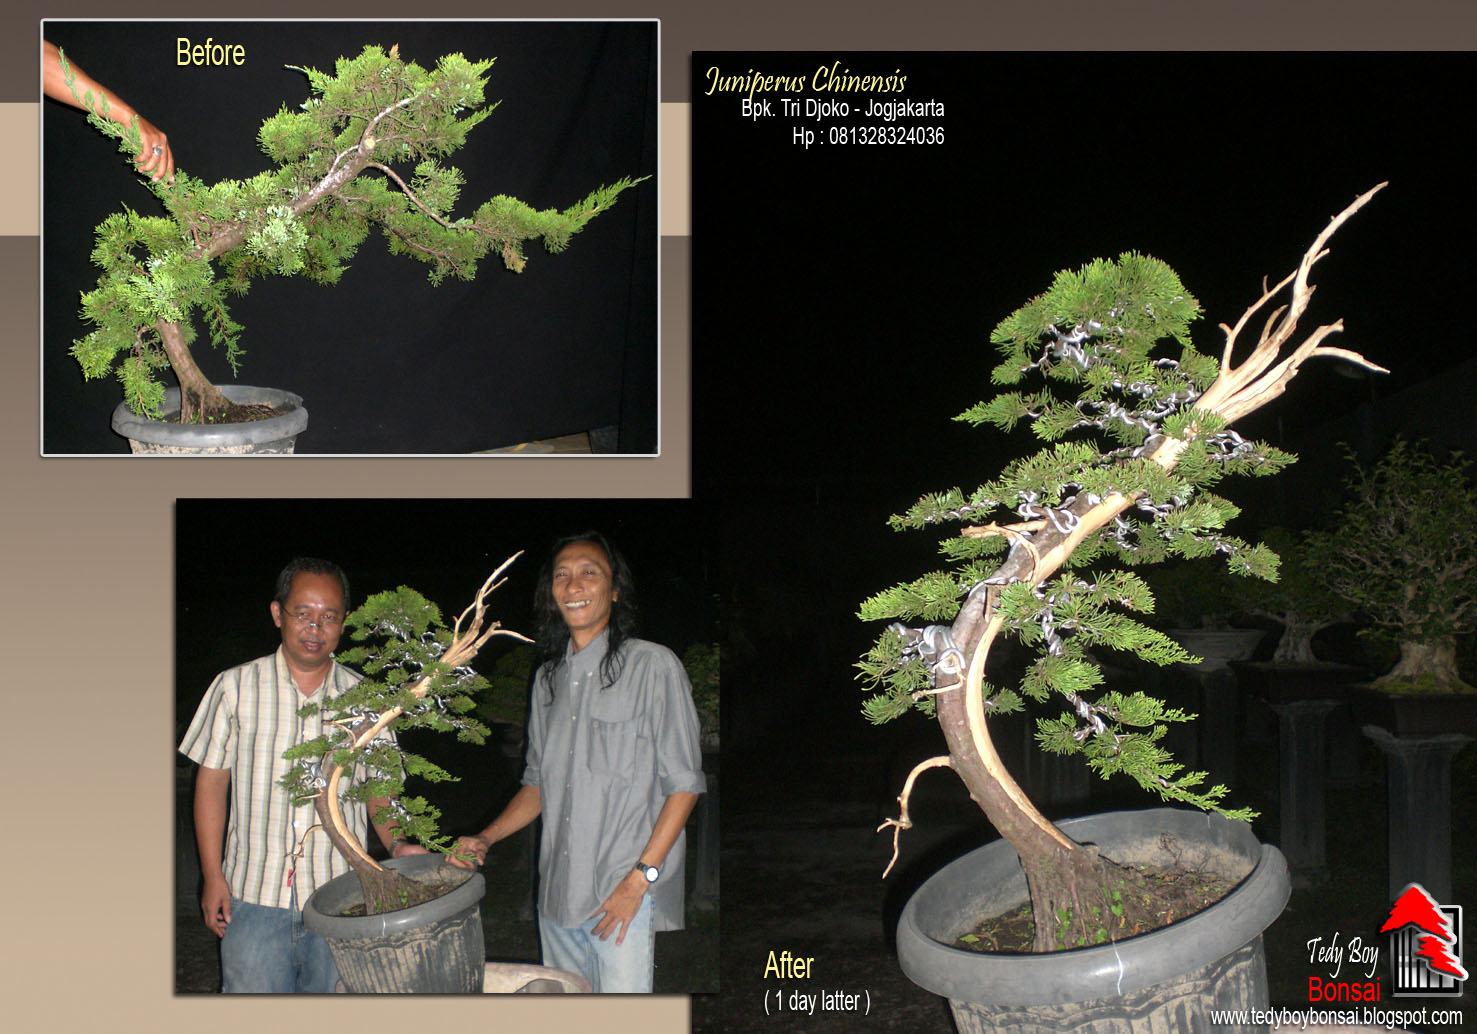 Bonsai Tedy Boy Bonsai INDONESIA Bonsai Europe Bonsai Usa